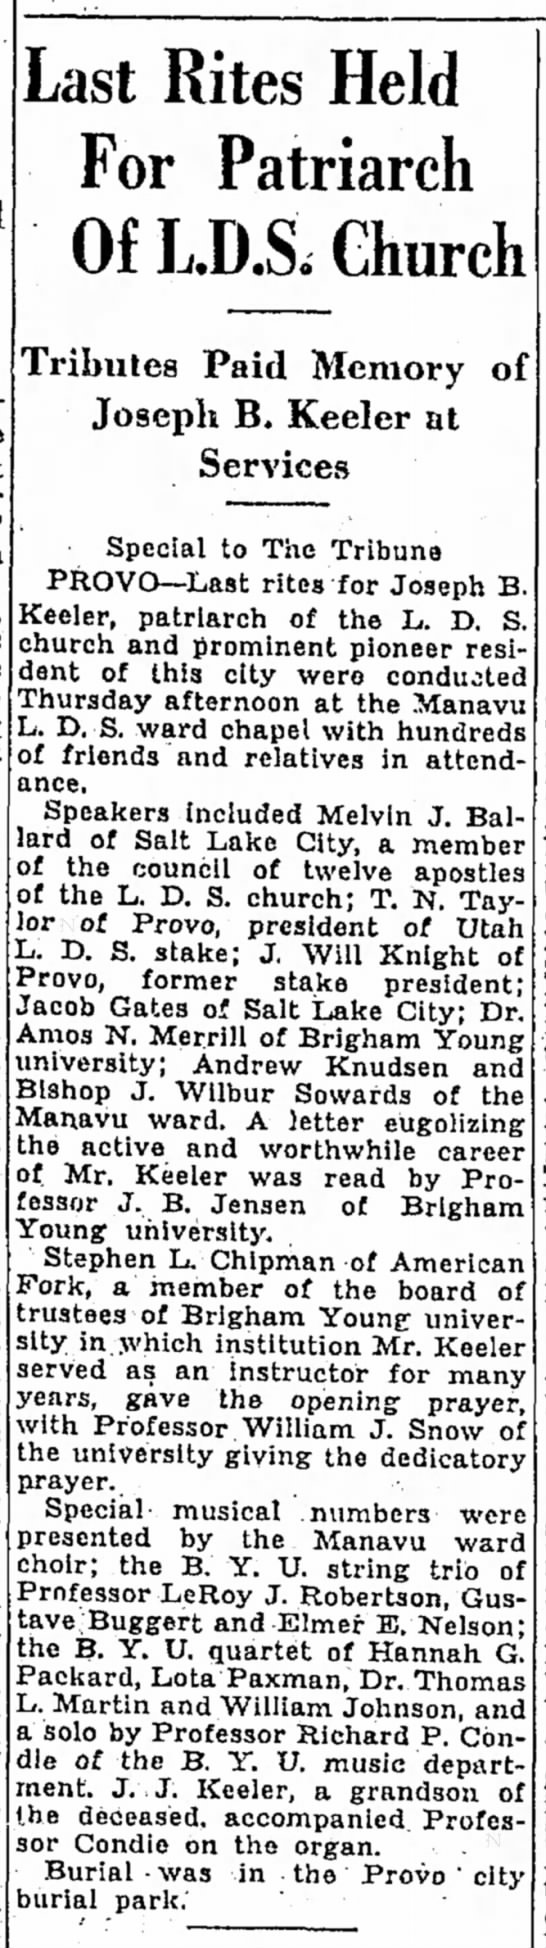 Joseph Brigham Keeler - Death Notice - Last Rites Held For Patriarch Of LD.S. Church...